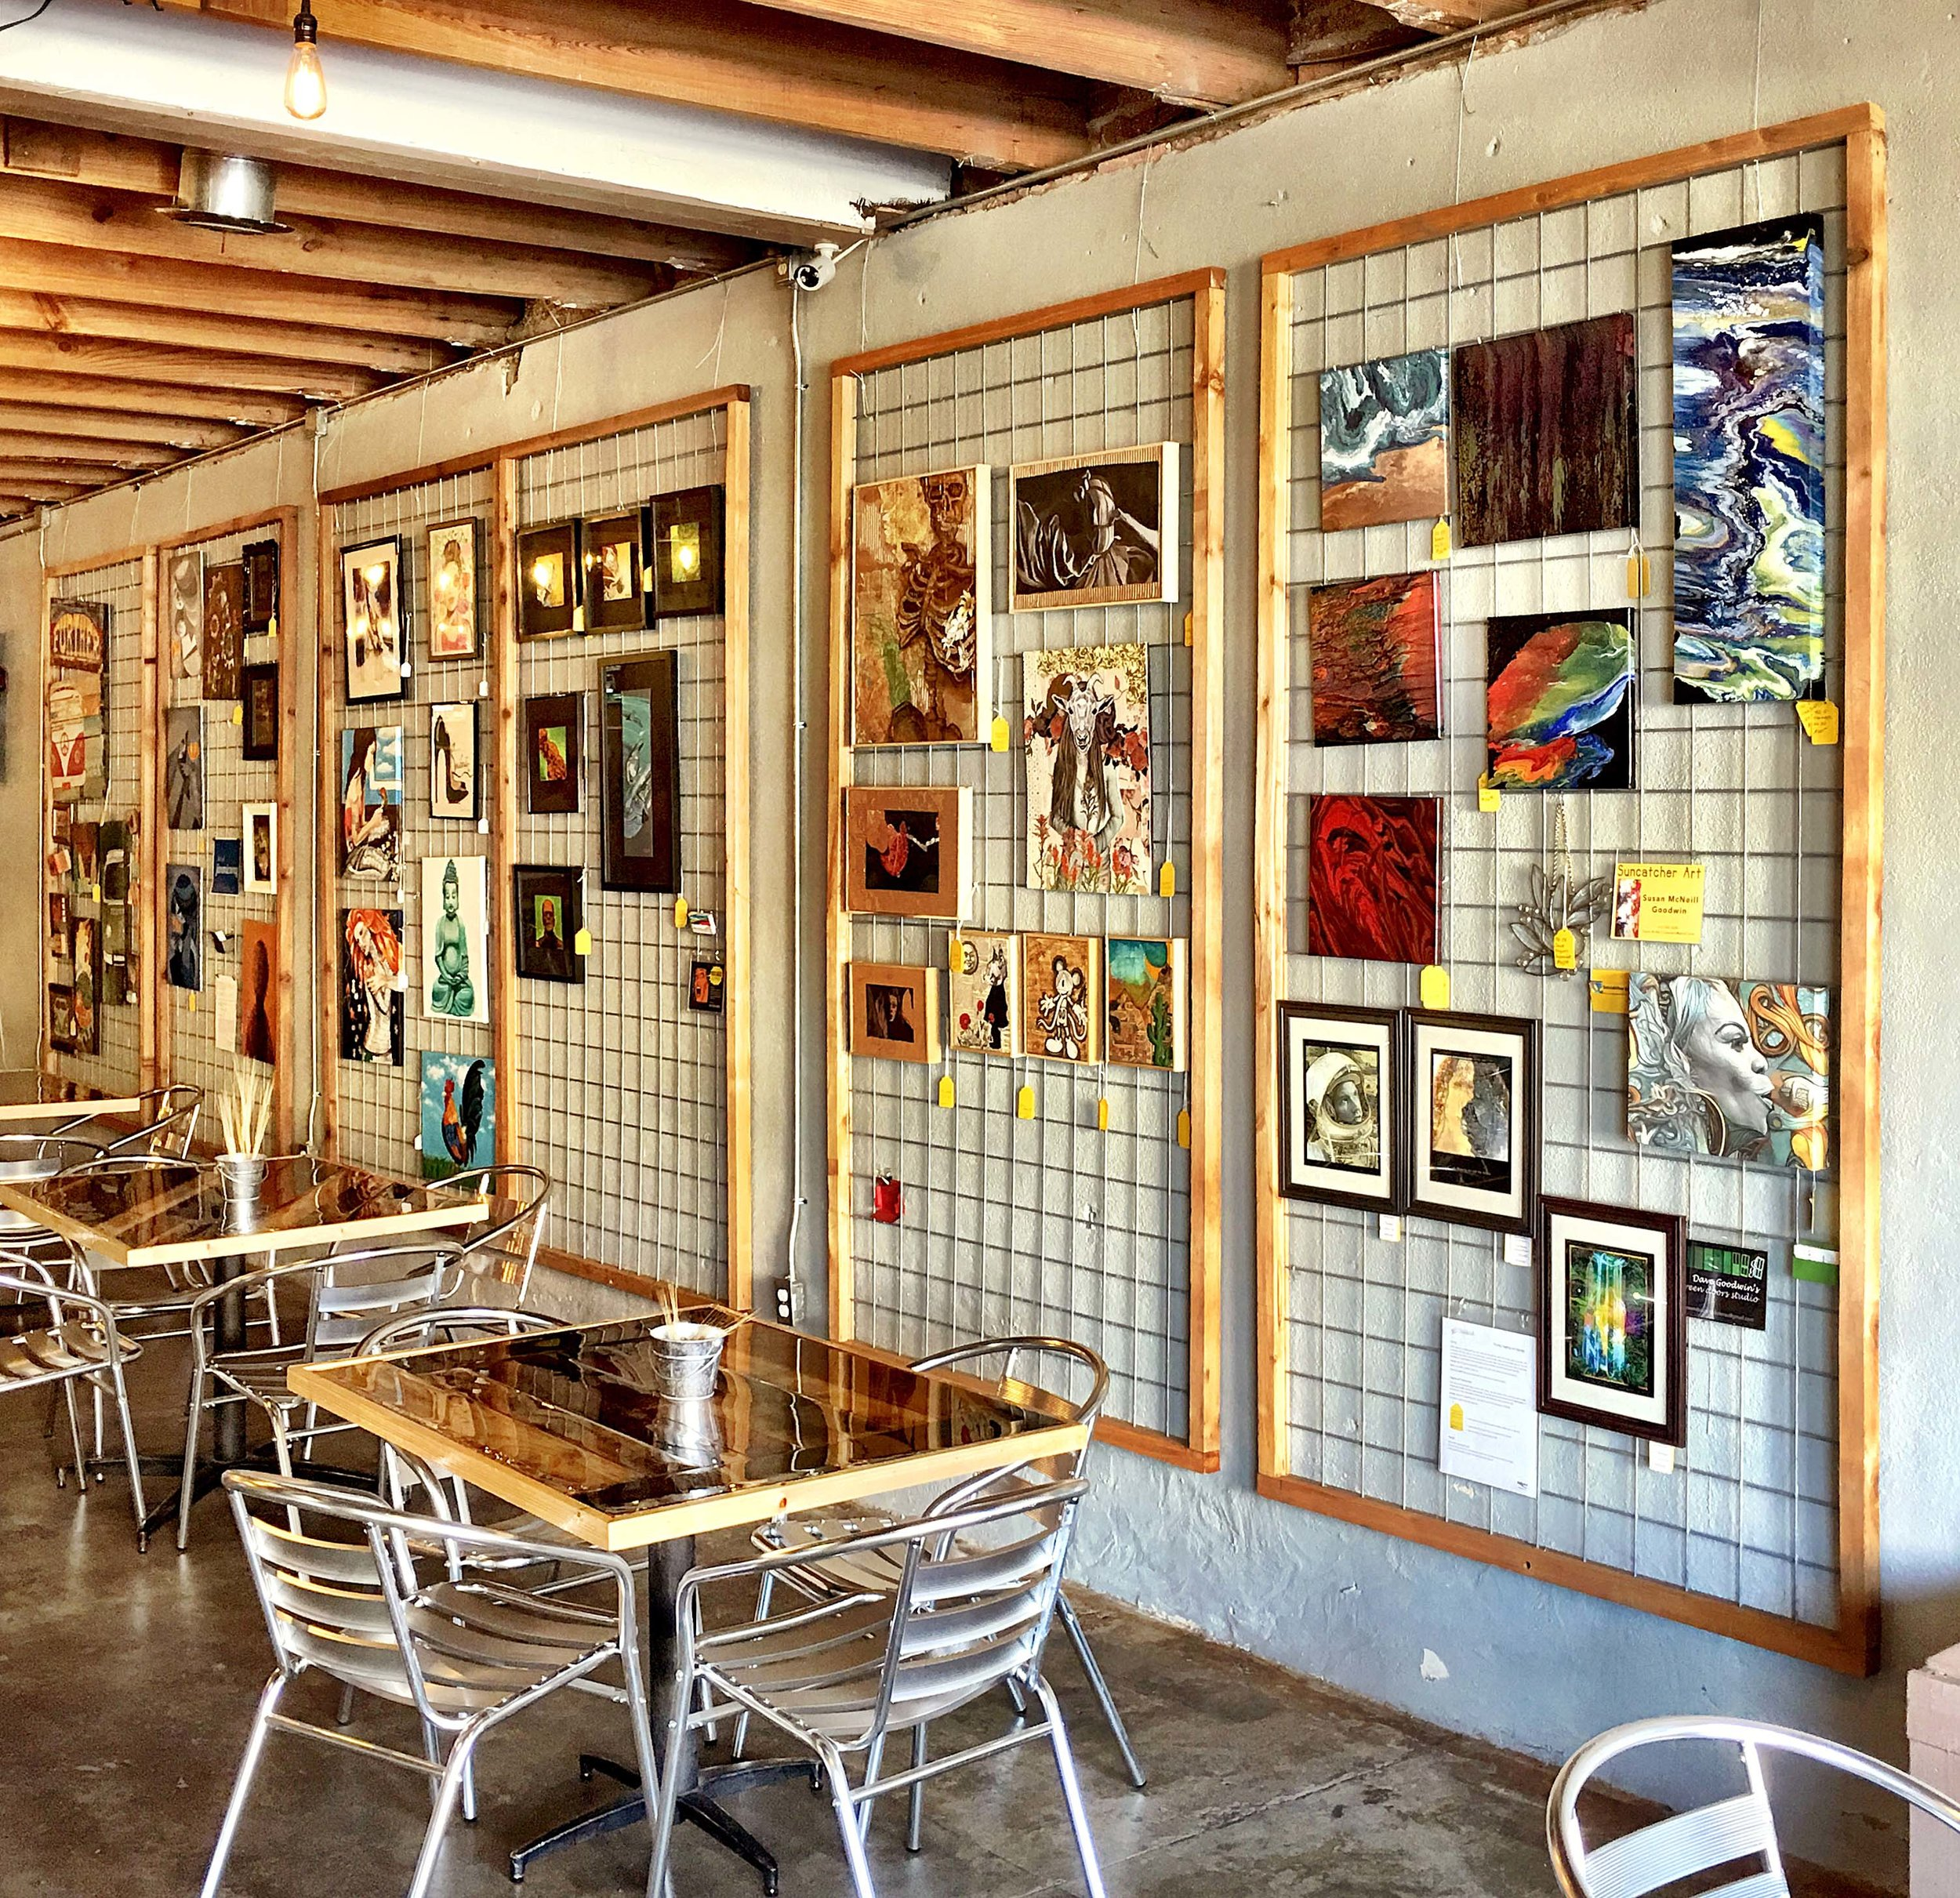 The OFF THE GRID Community Gallery is located at Dirty Job Brewing on Main Street in historic Downtown Mansfield, Texas.